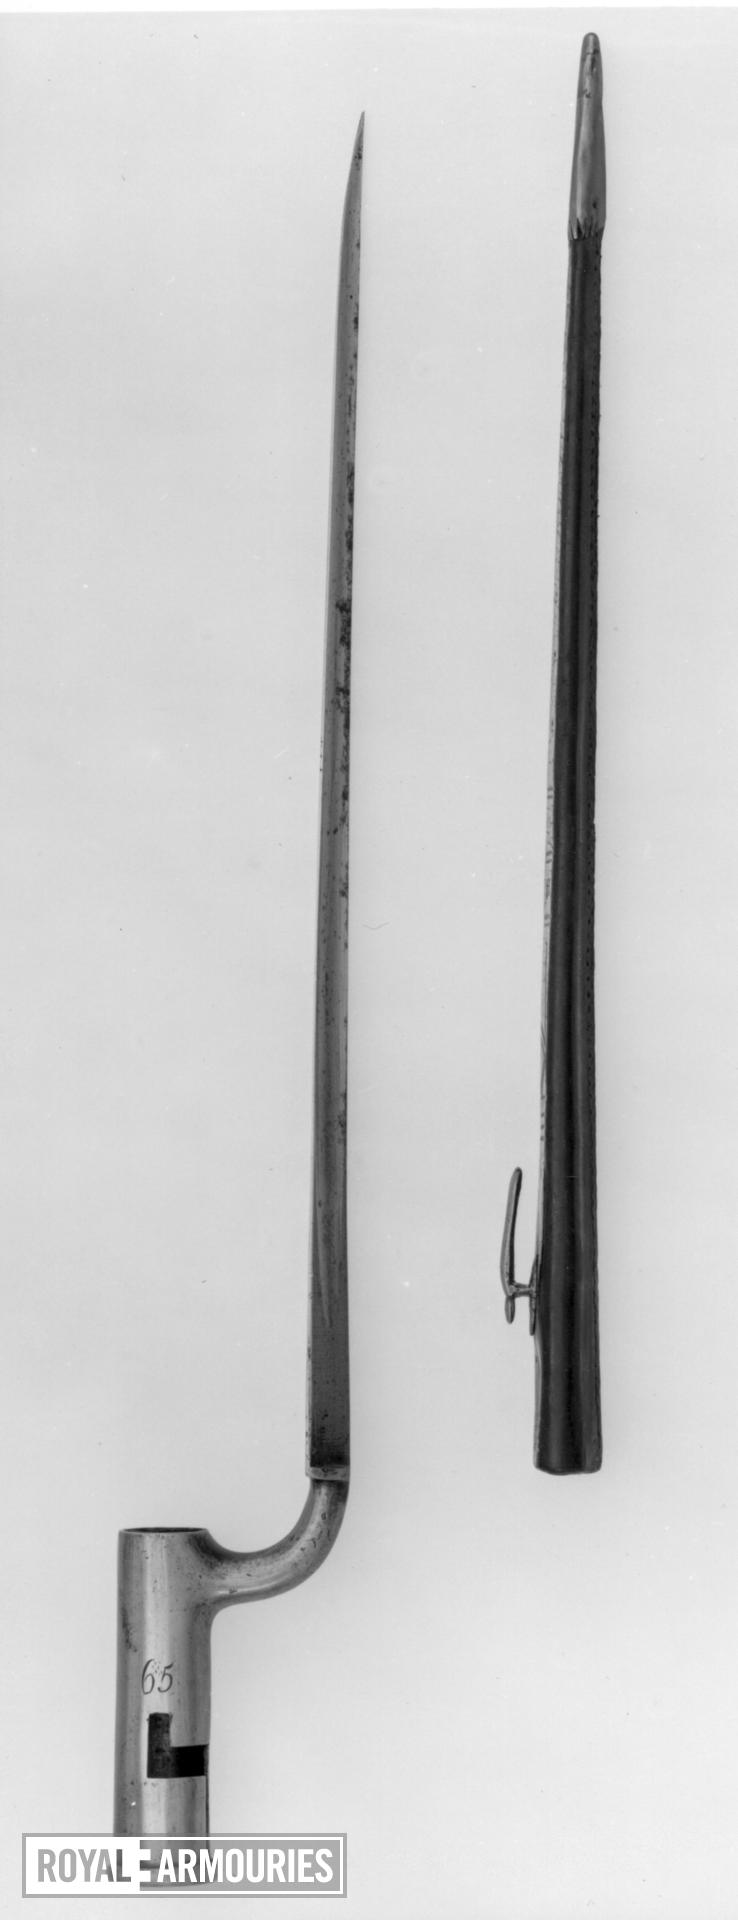 Bayonet and scabbard